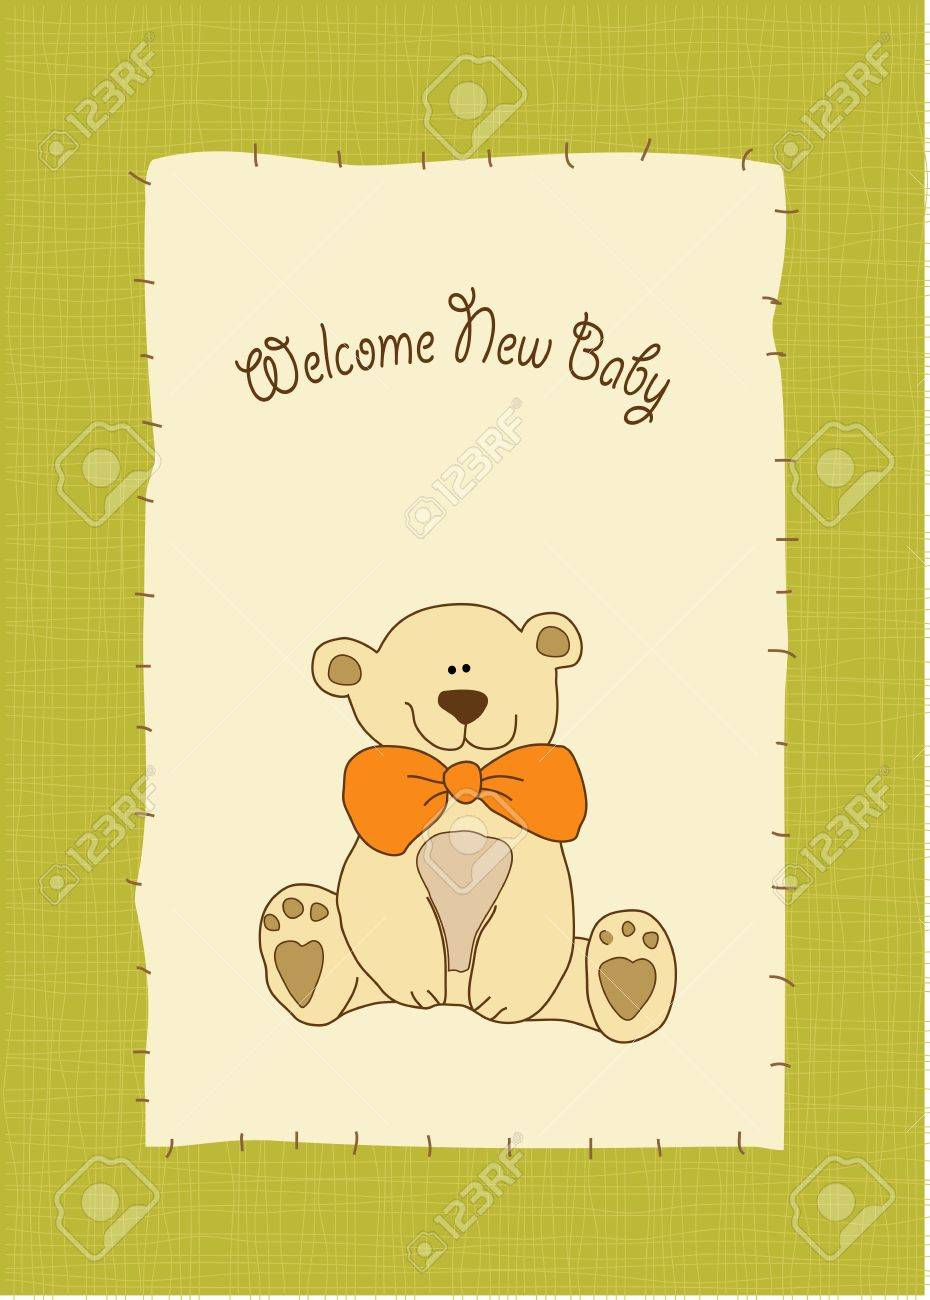 new baby invitation with teddy bear Stock Vector - 9806383